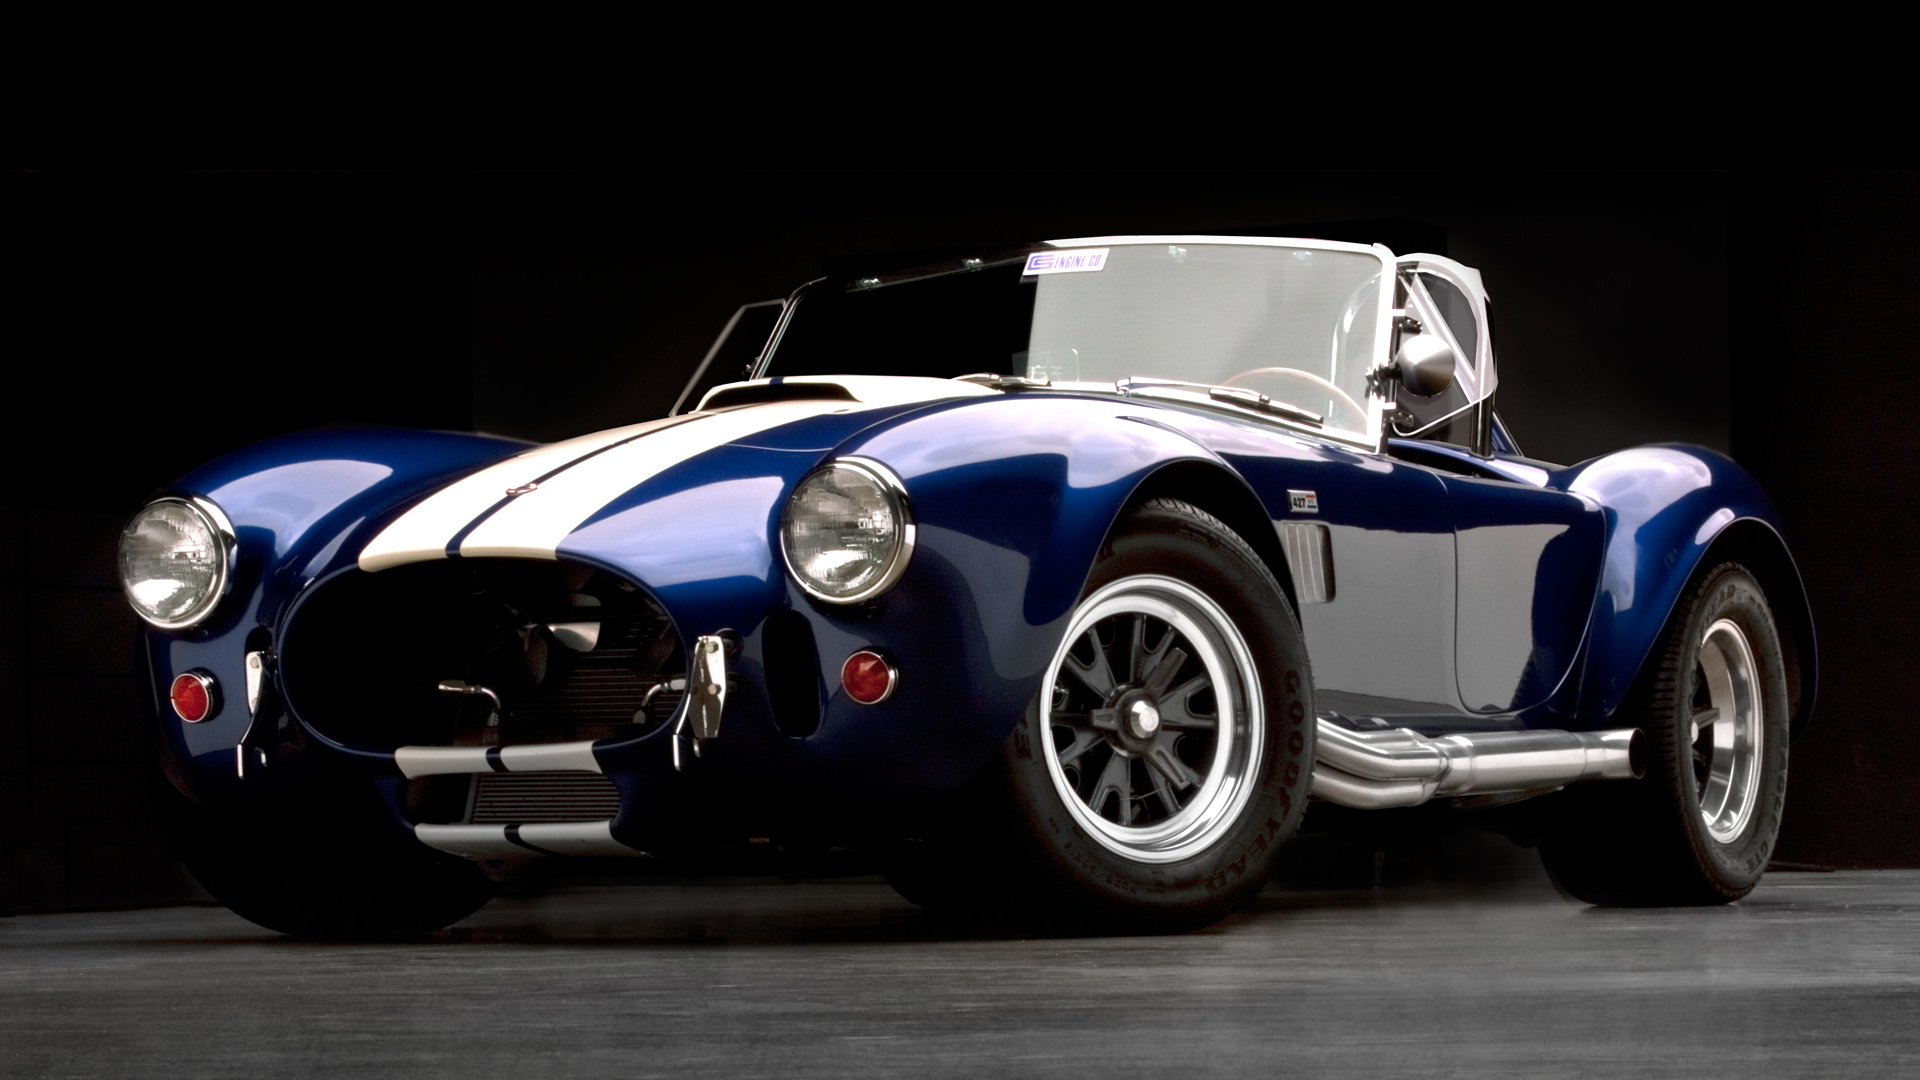 Shelby Cobra Wallpapers Wallpapersafari